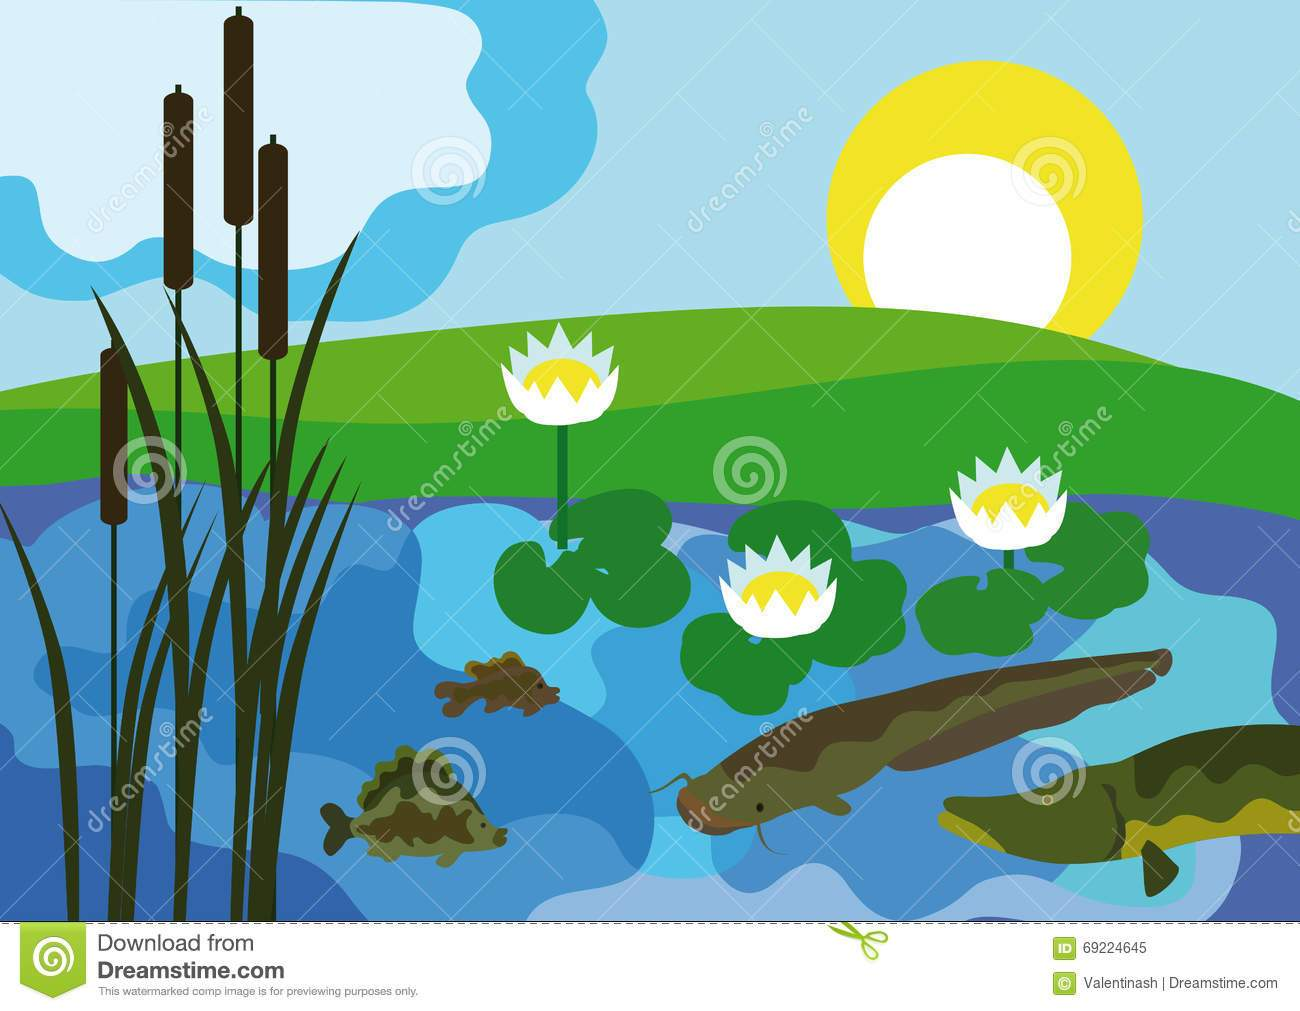 Fresh water clipart 6 » Clipart Portal.